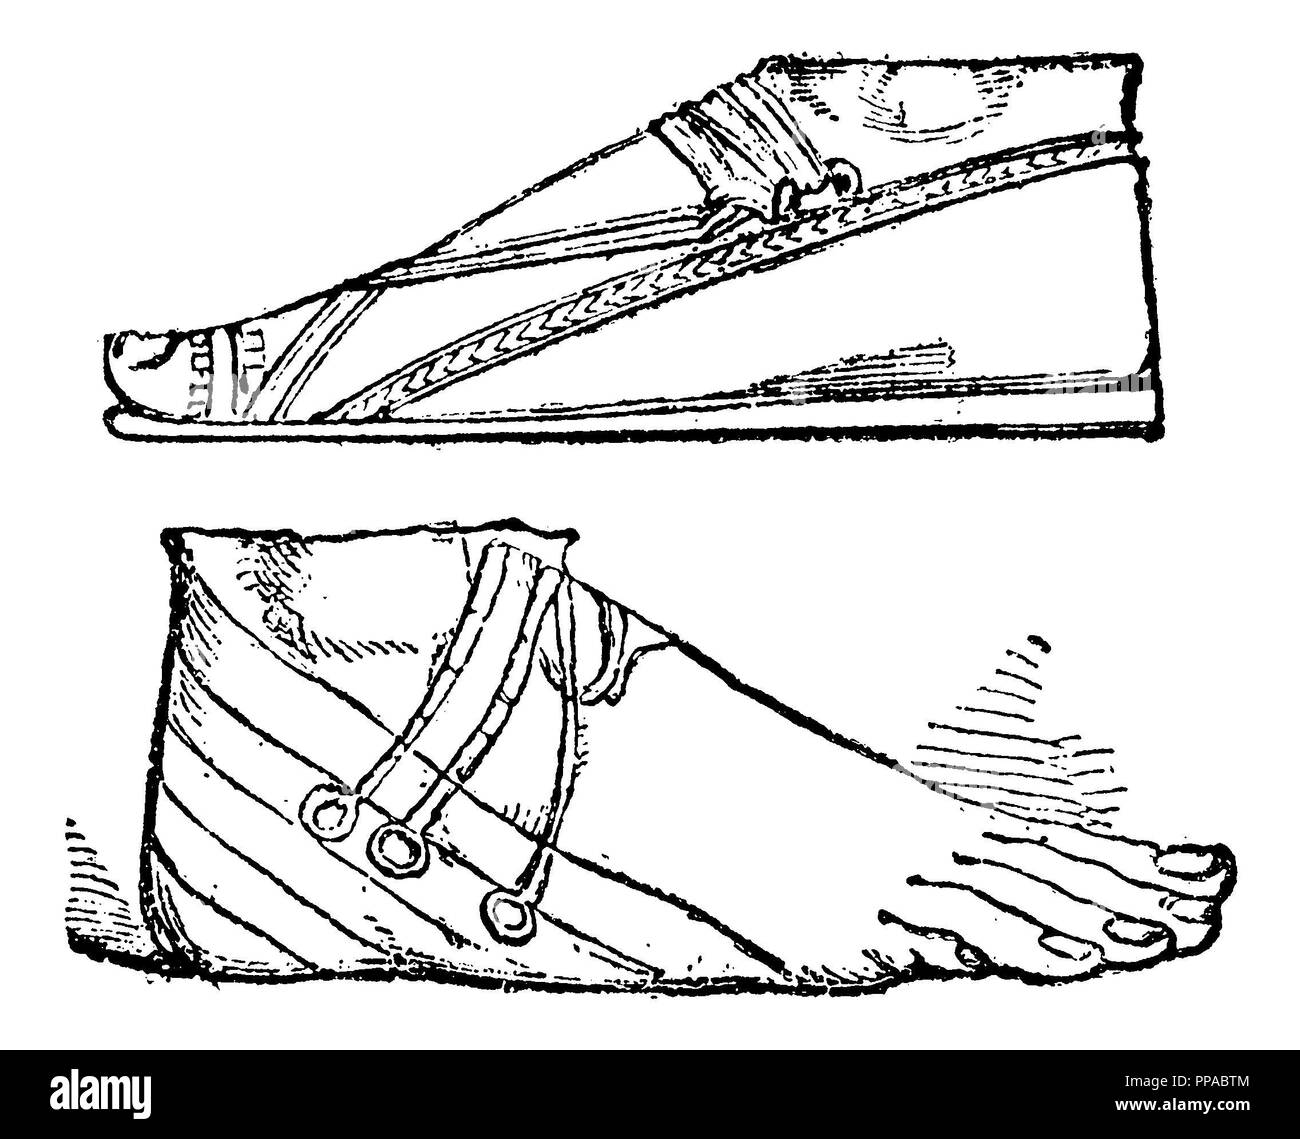 Assyrian sandals. After Layard,   1885 - Stock Image